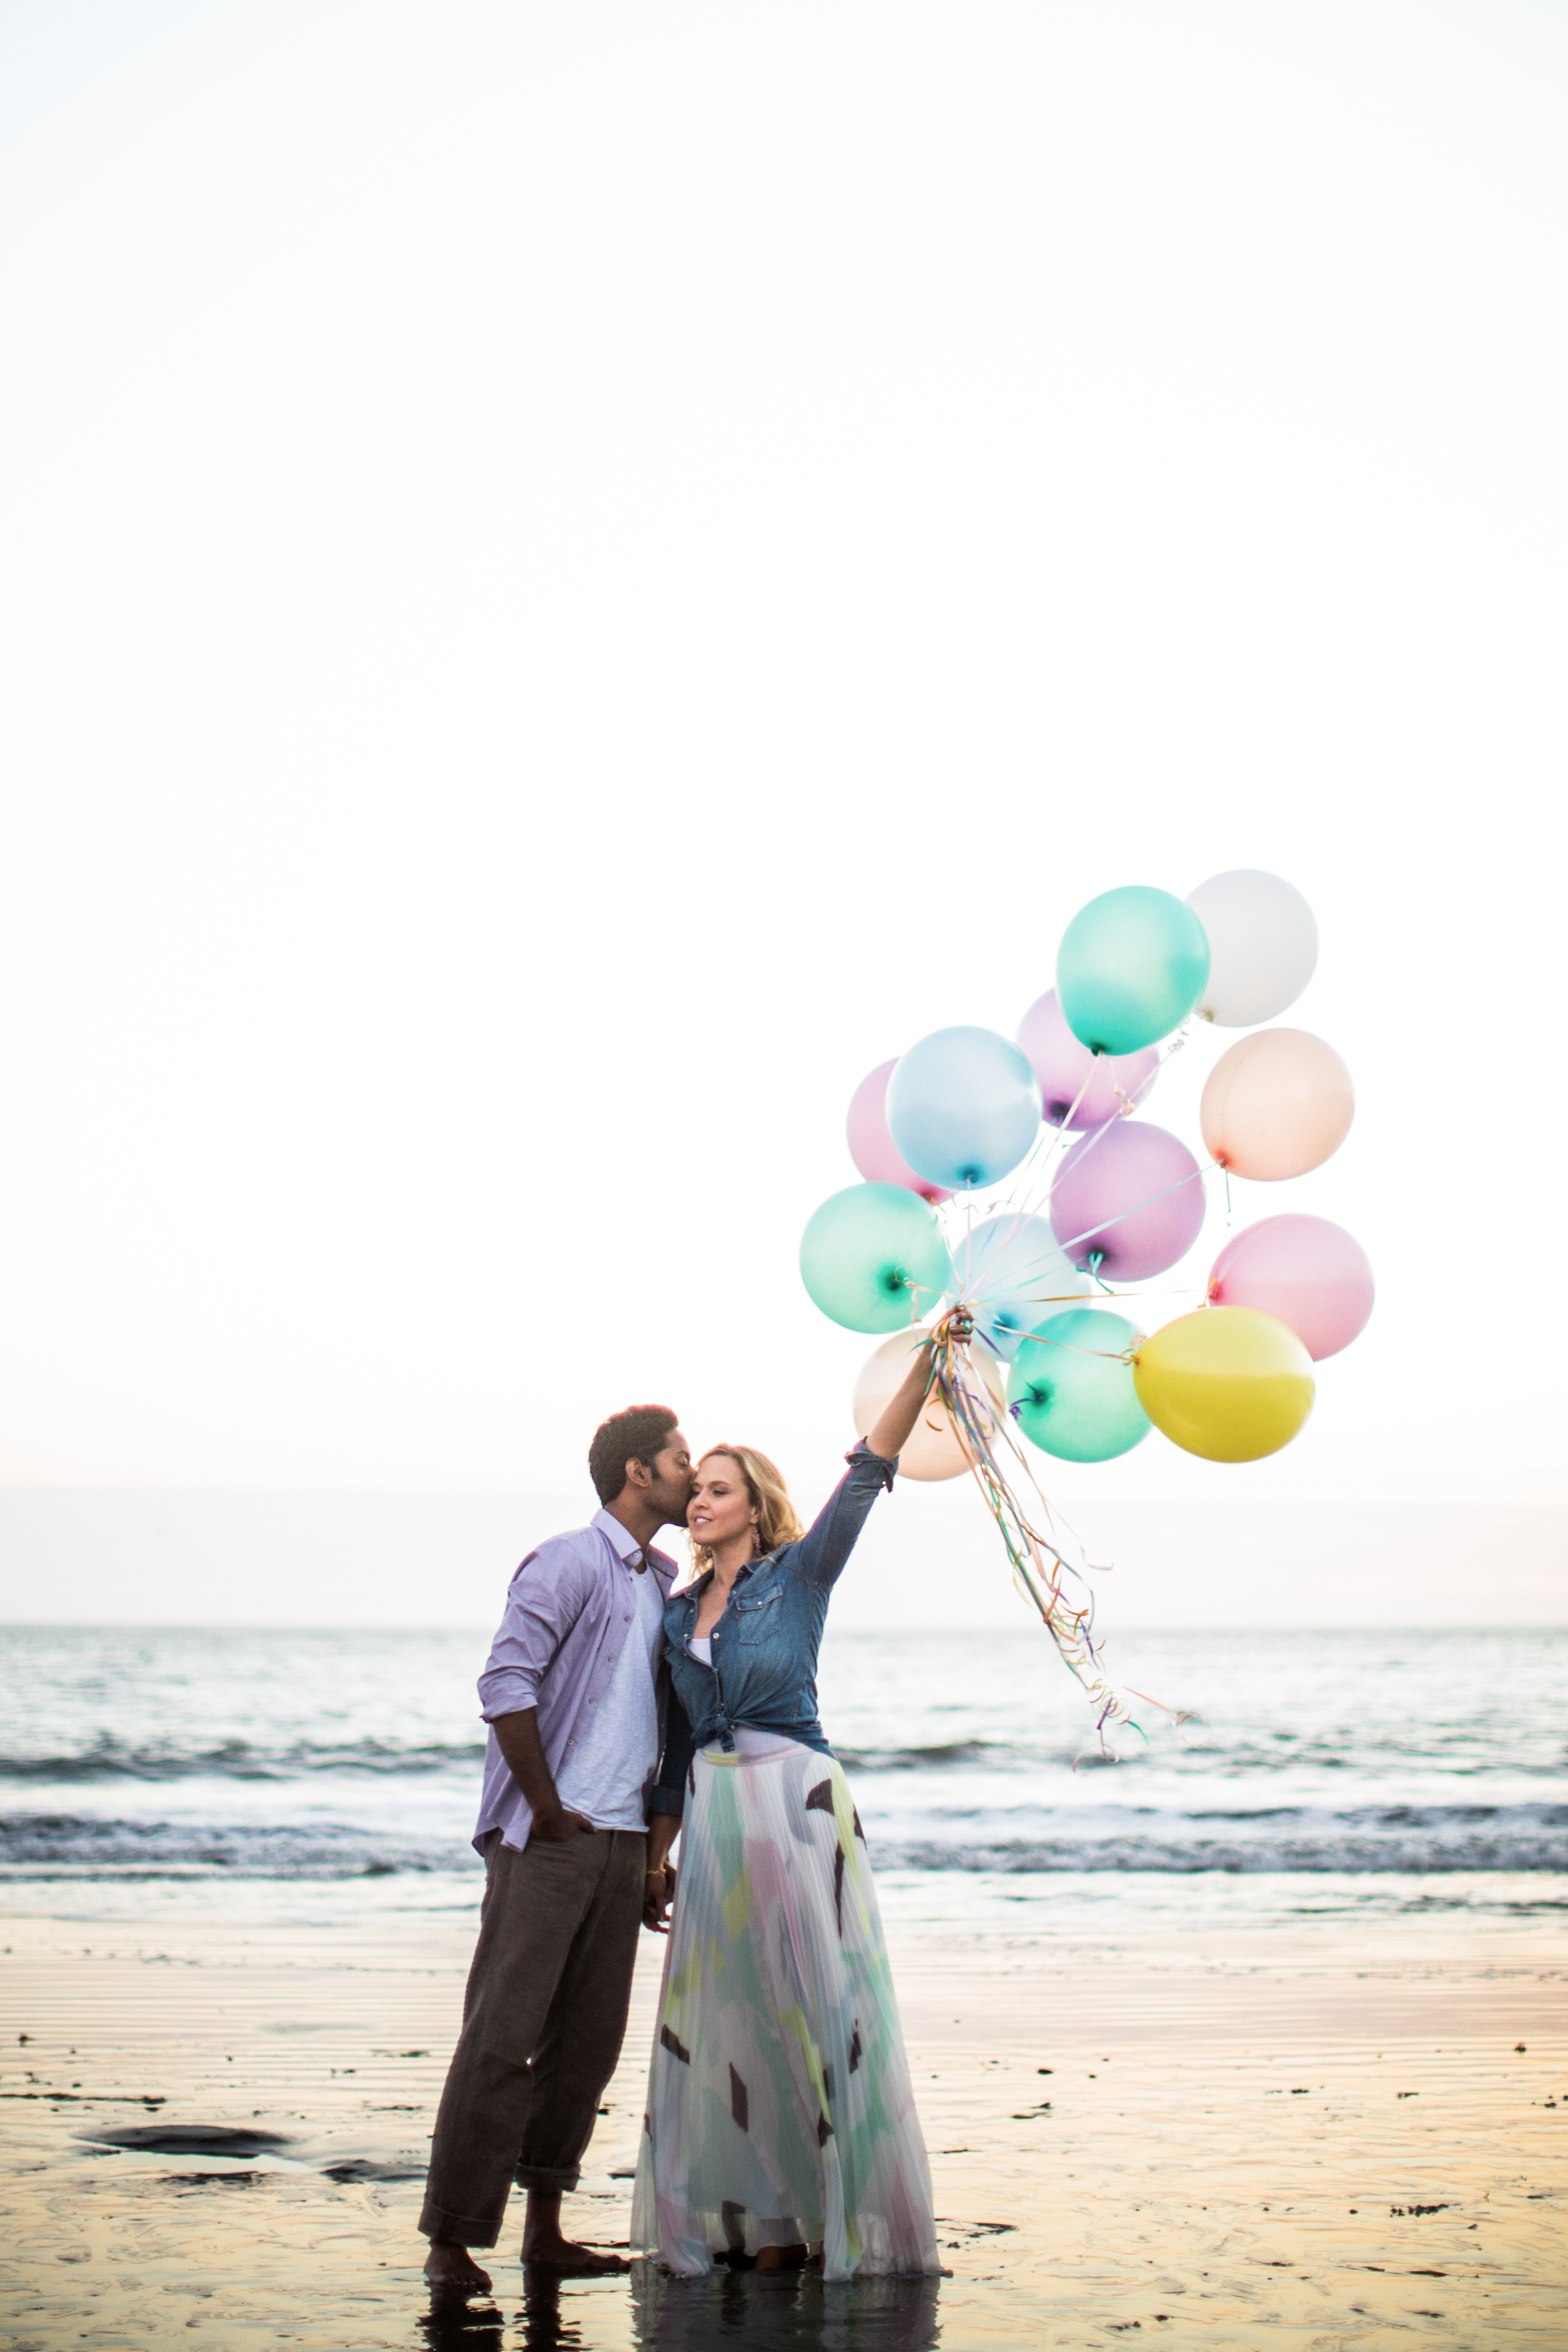 Engagement Session with Balloons | Blueberry Photography | Joy Wed Blog